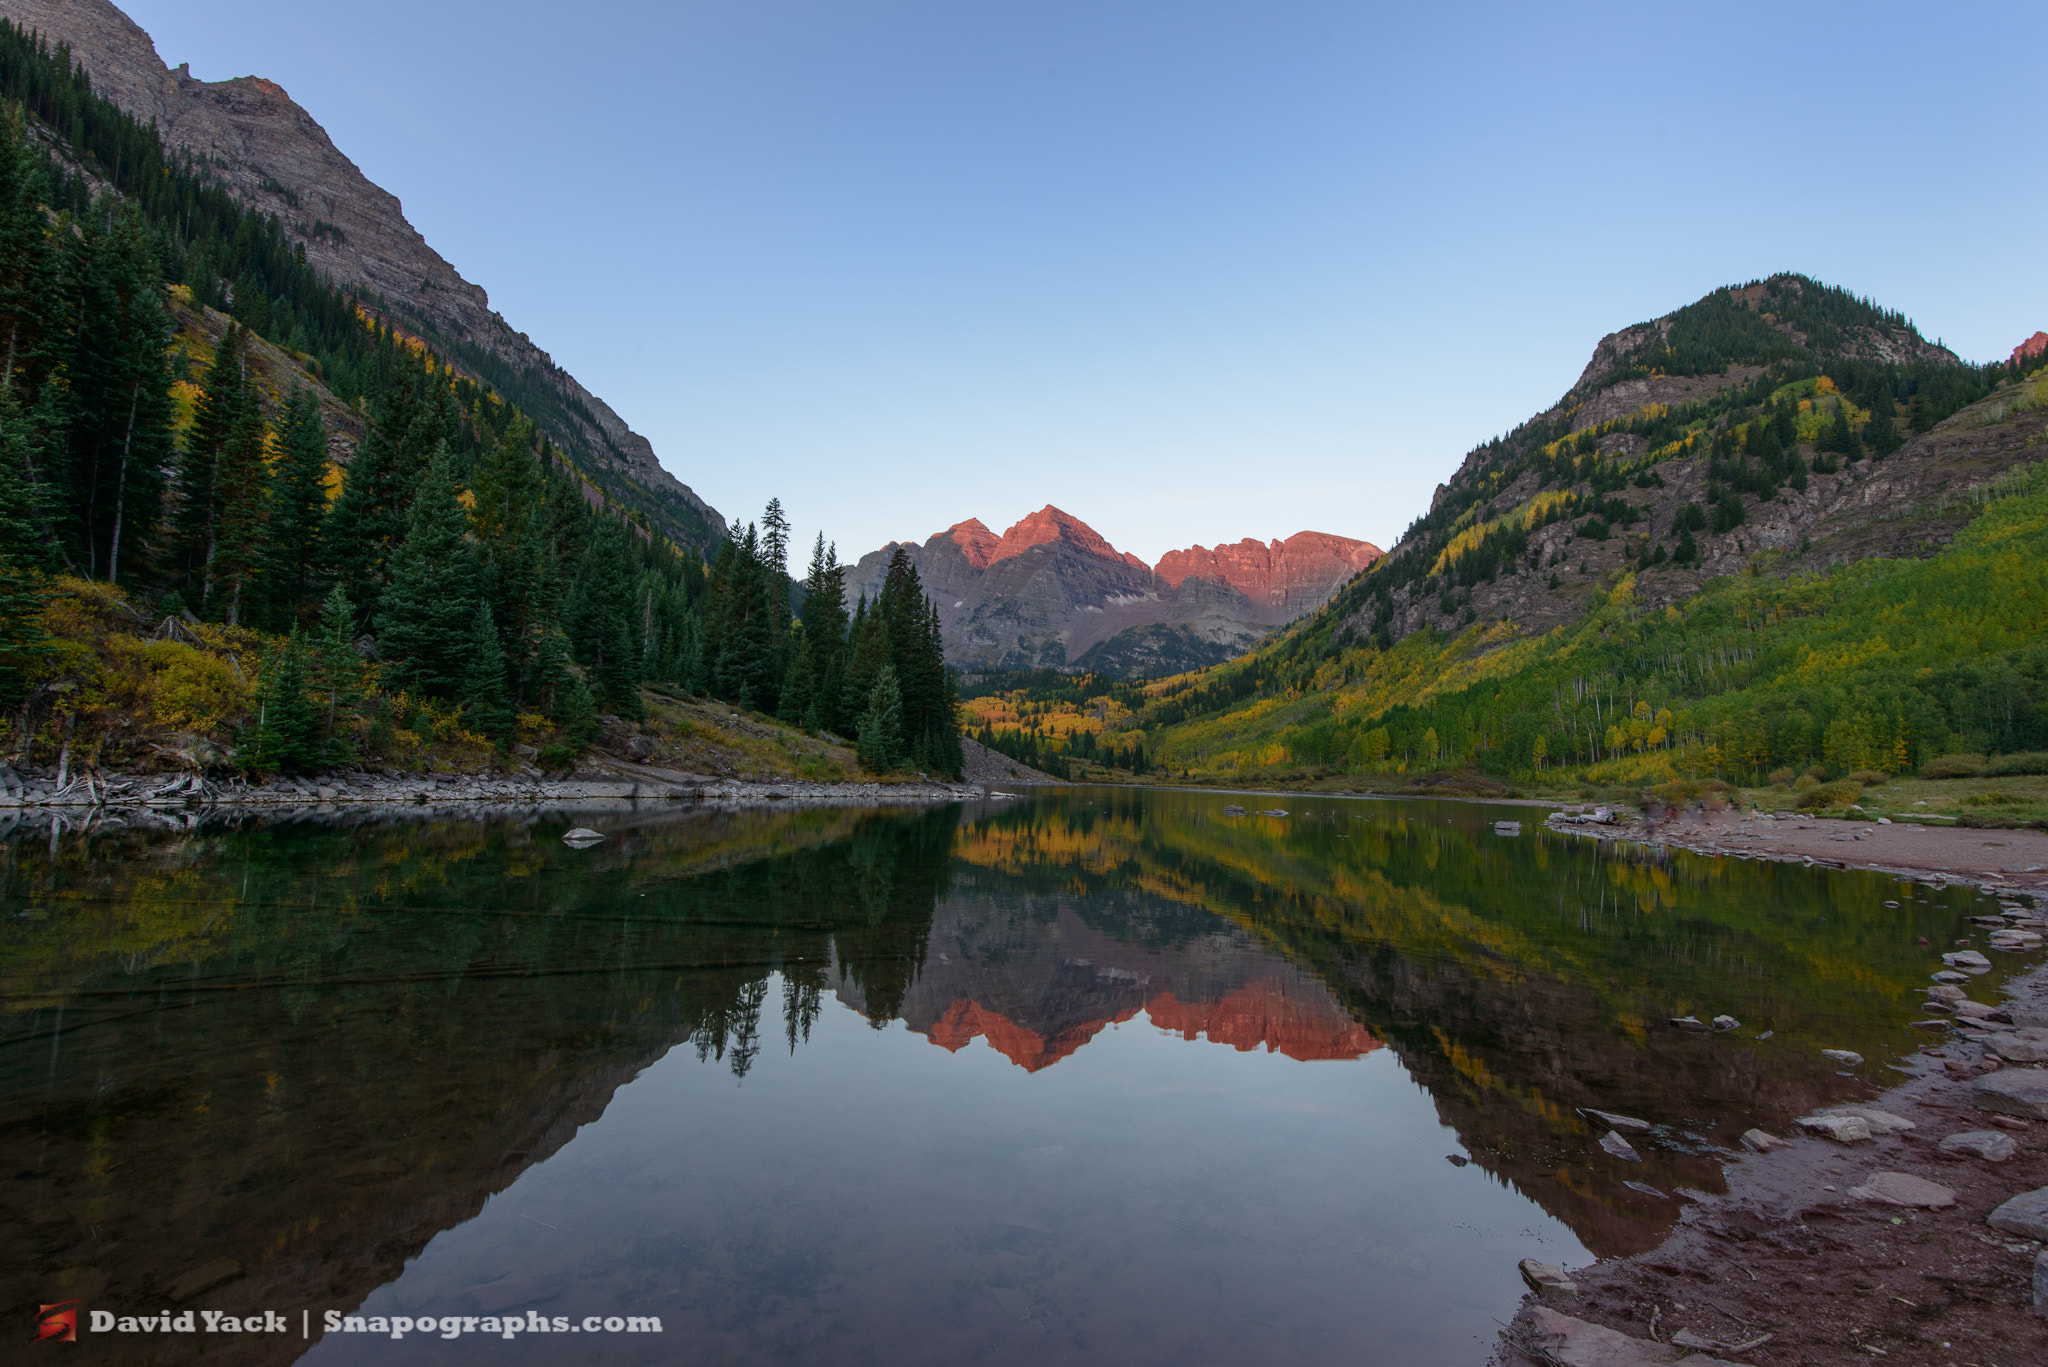 Photograph Maroon Bells Waking Up by David Yack on 500px